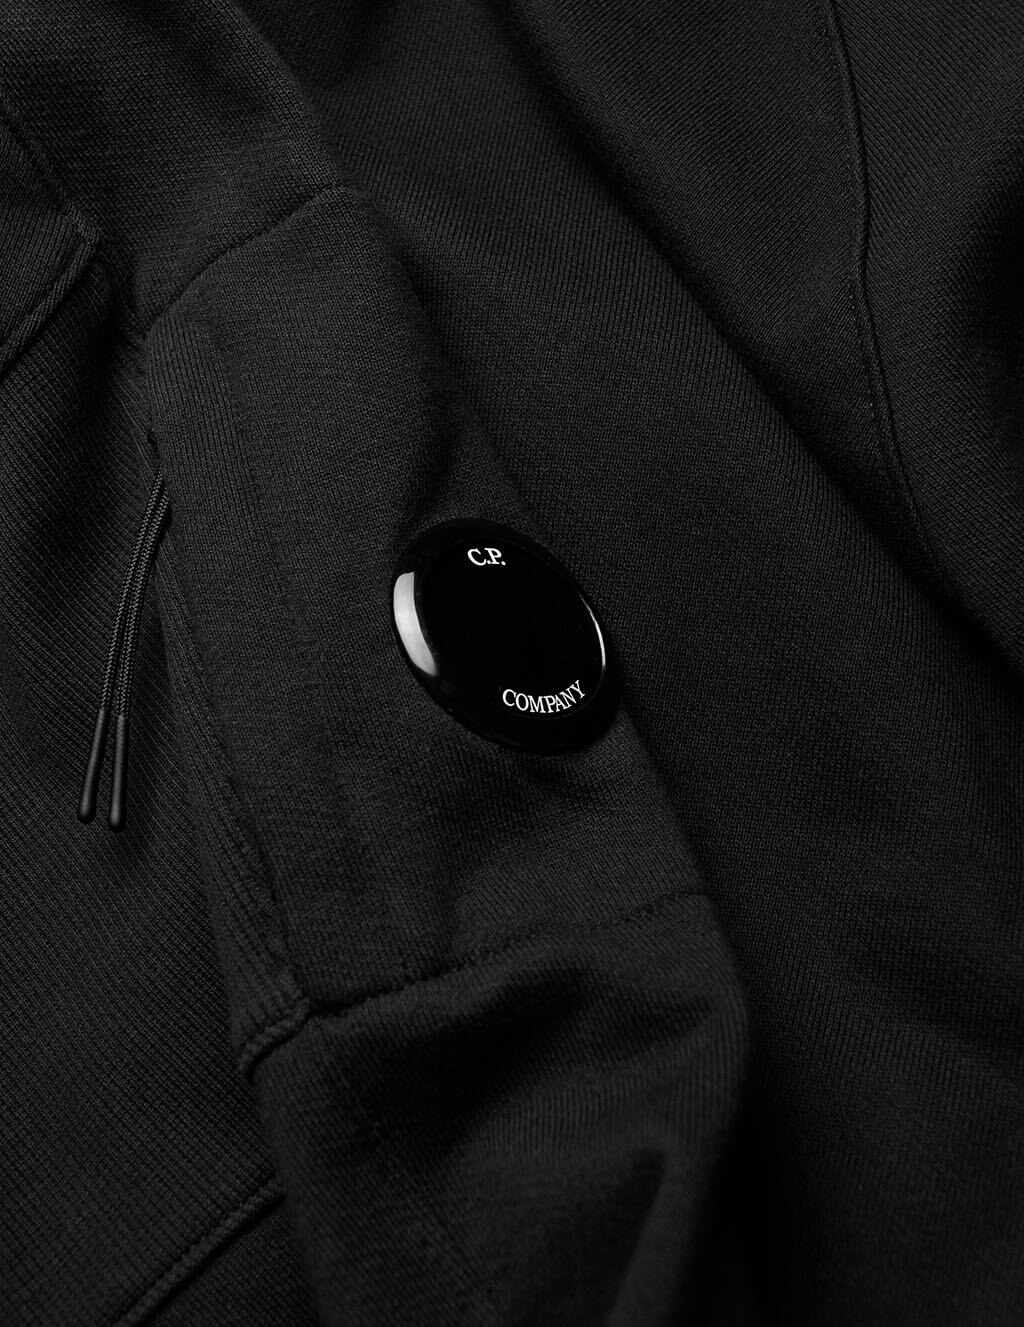 mens cp company panel insert hoodie black MSS033A005086W999